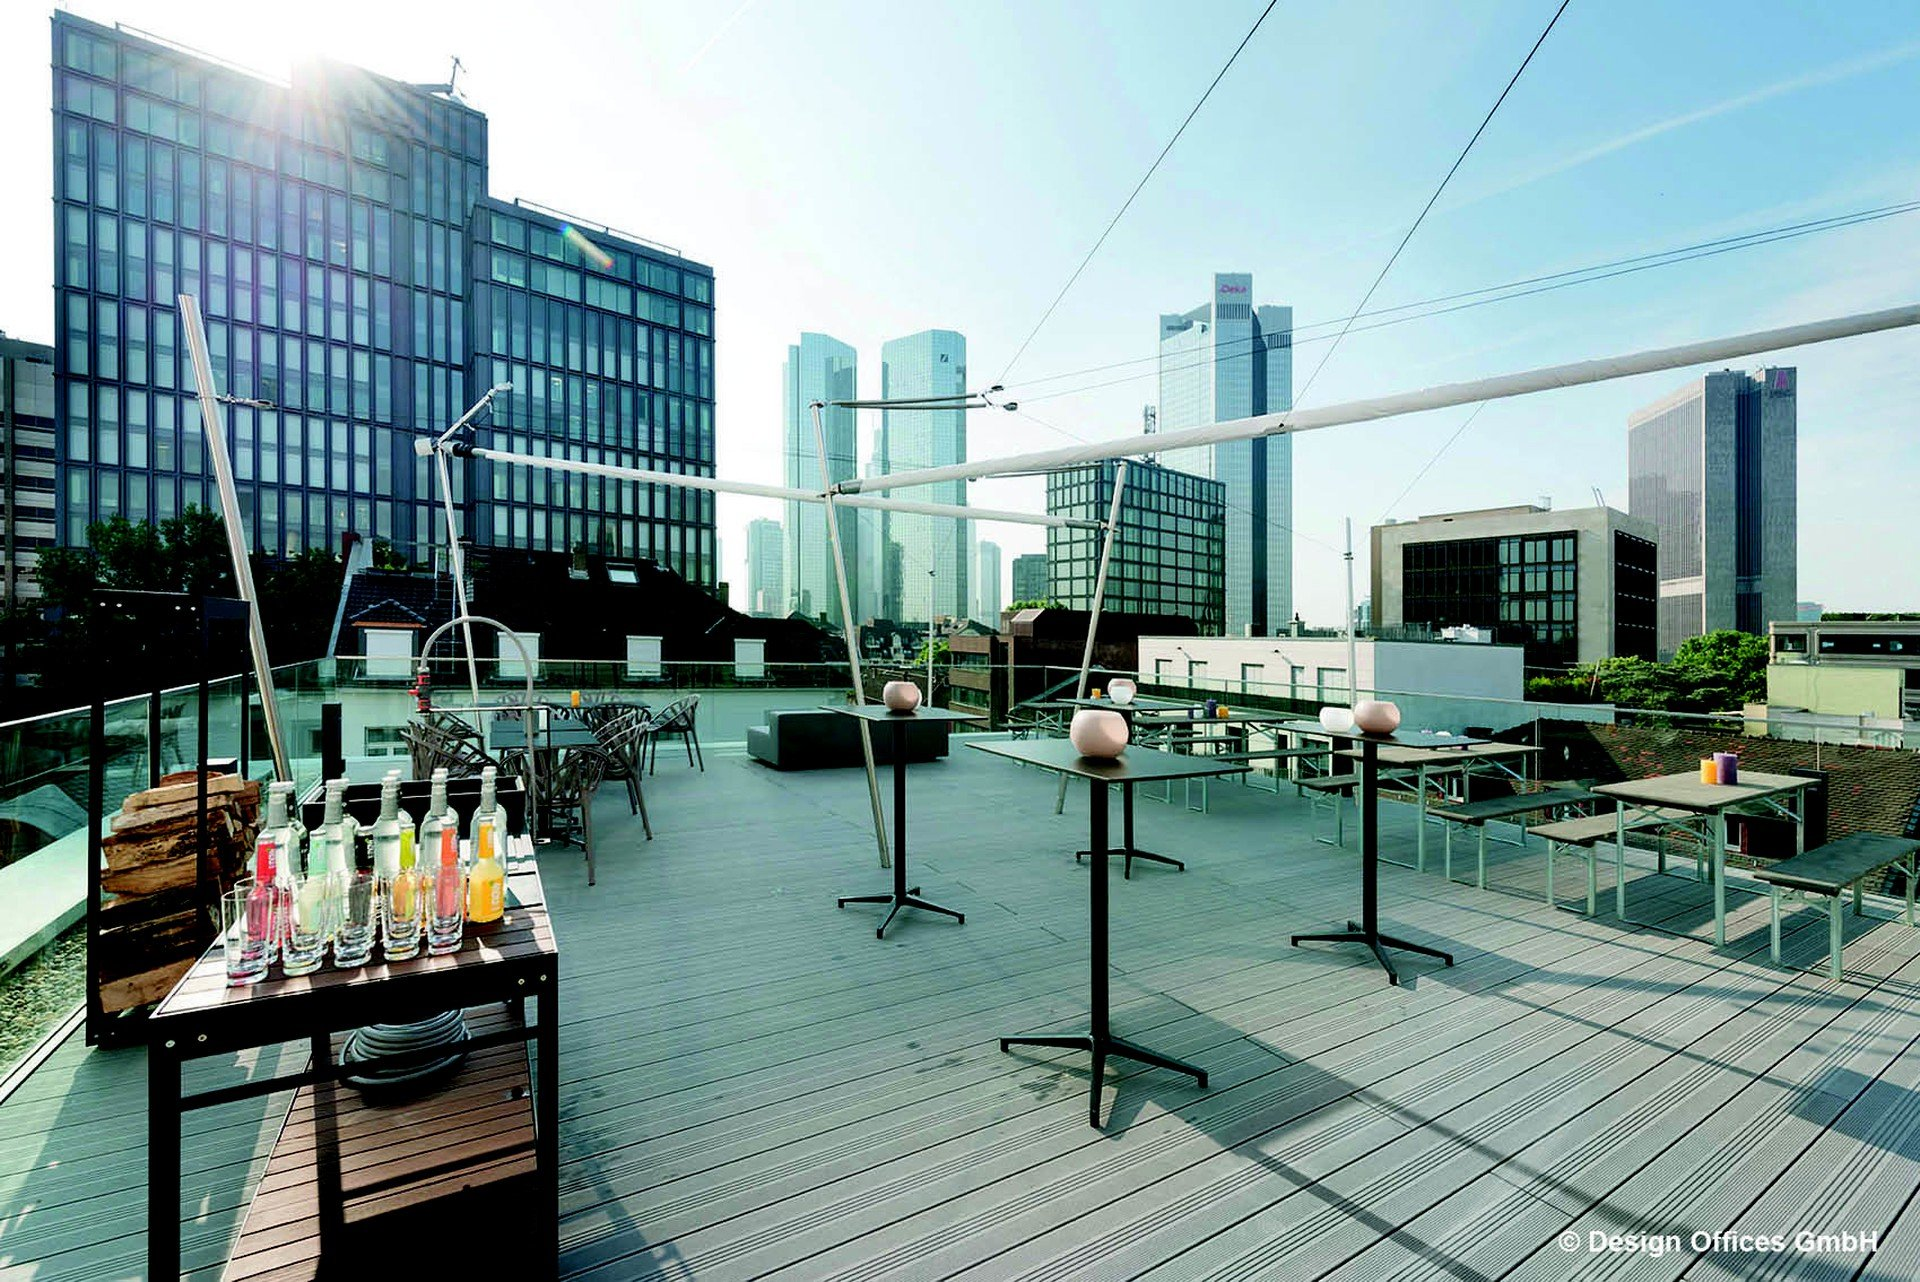 Frankfurt corporate event venues Rooftop Design Offices Frankfurt Barckhausstraße - Rooftop image 4